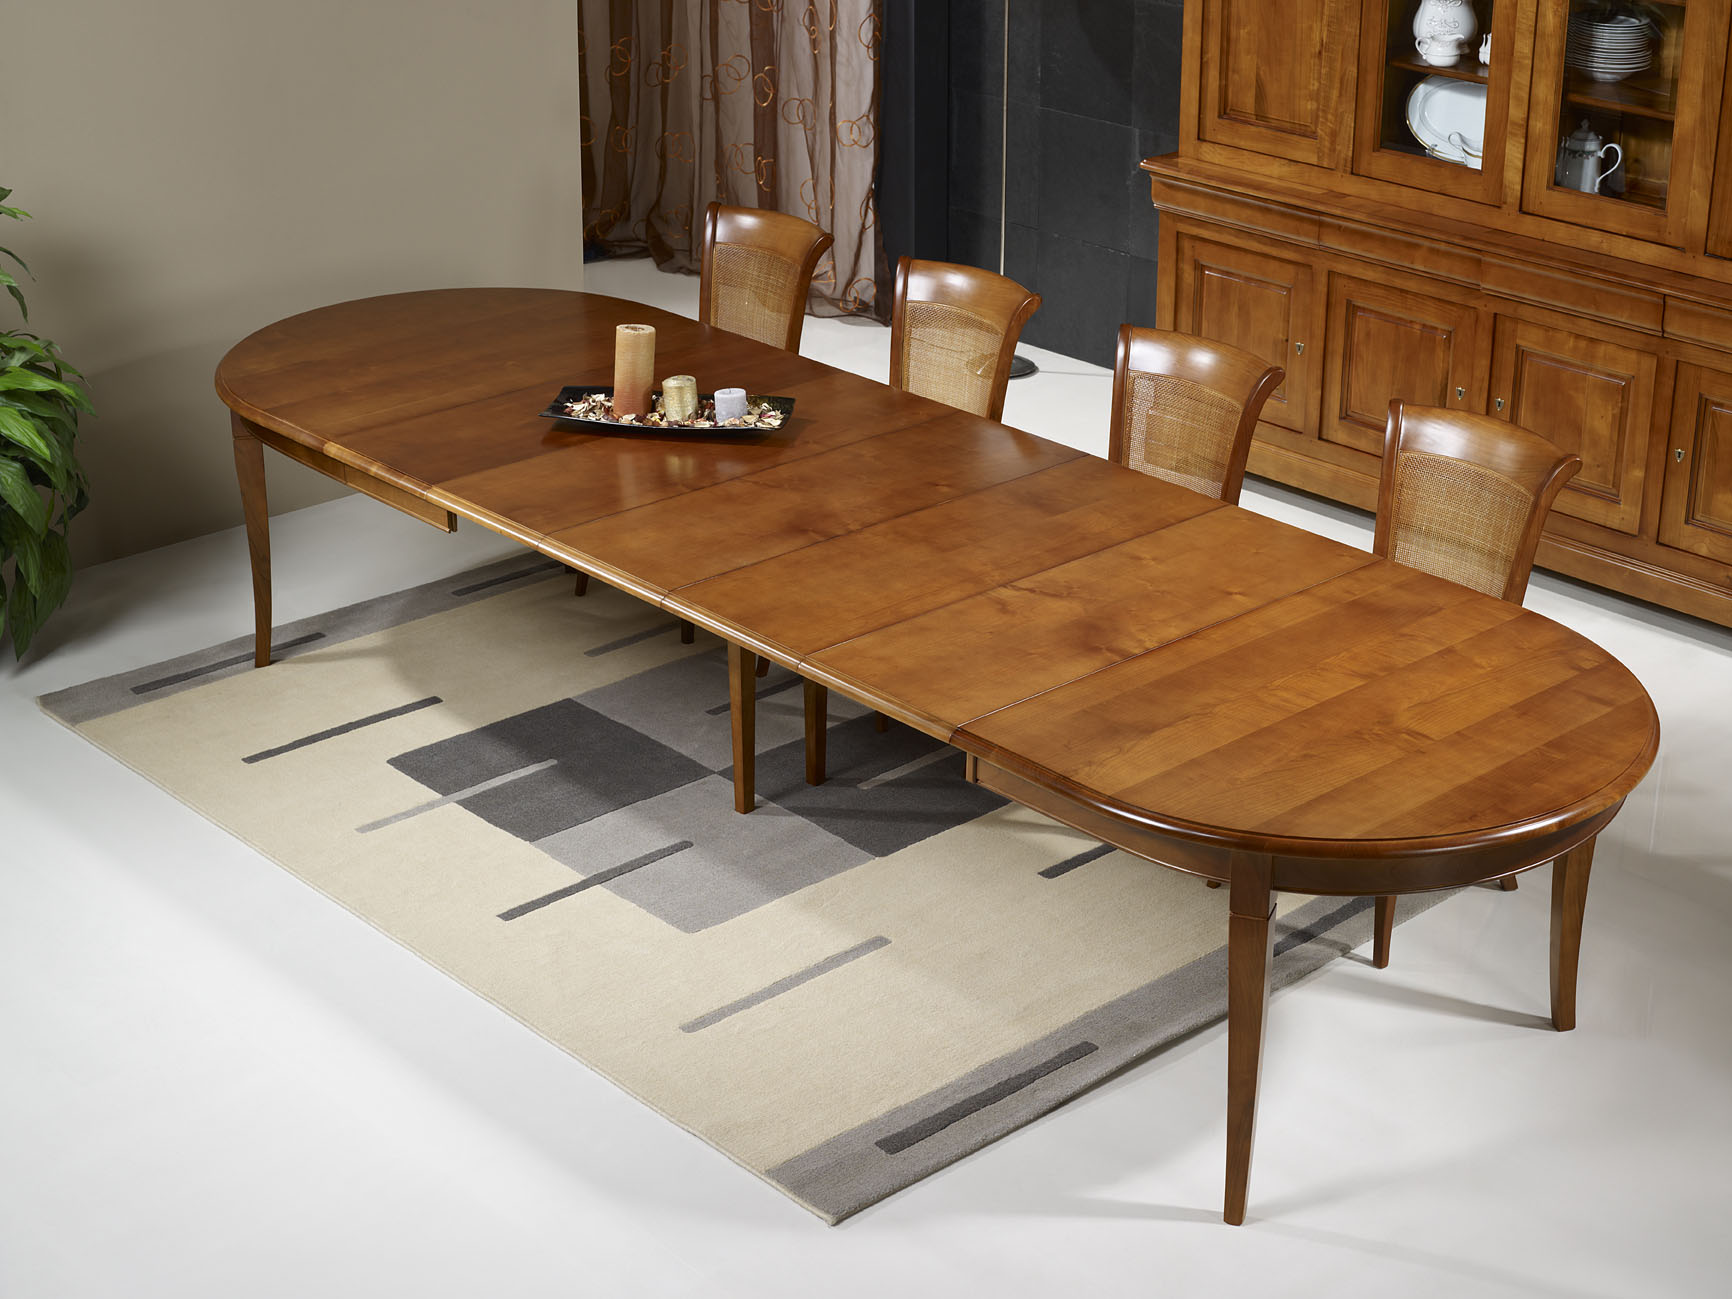 Table ovale 180x120 en merisier massif de style louis for Table rectangulaire bois avec allonges